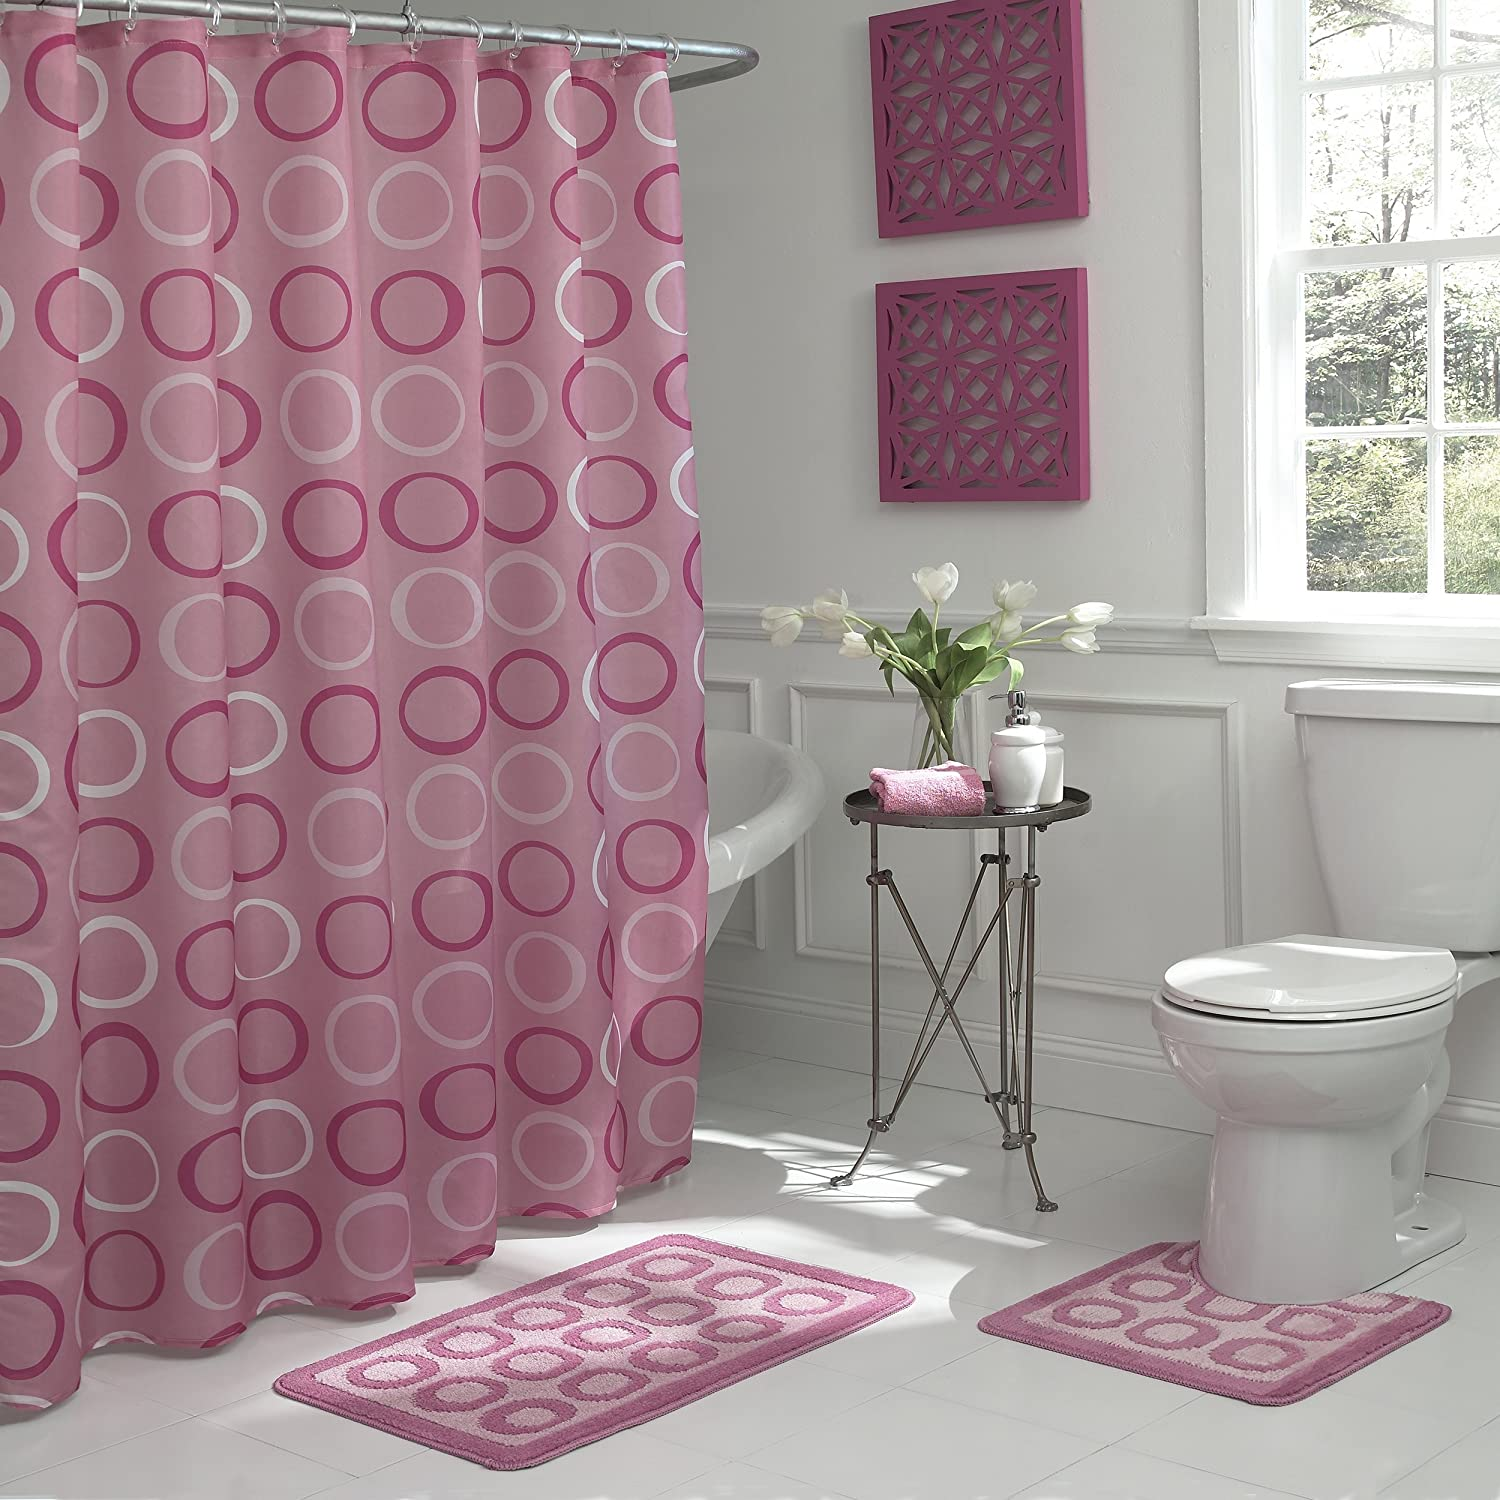 Bath Fusion Terrell Geometric 15-Piece Bath Set, Dusty Rose